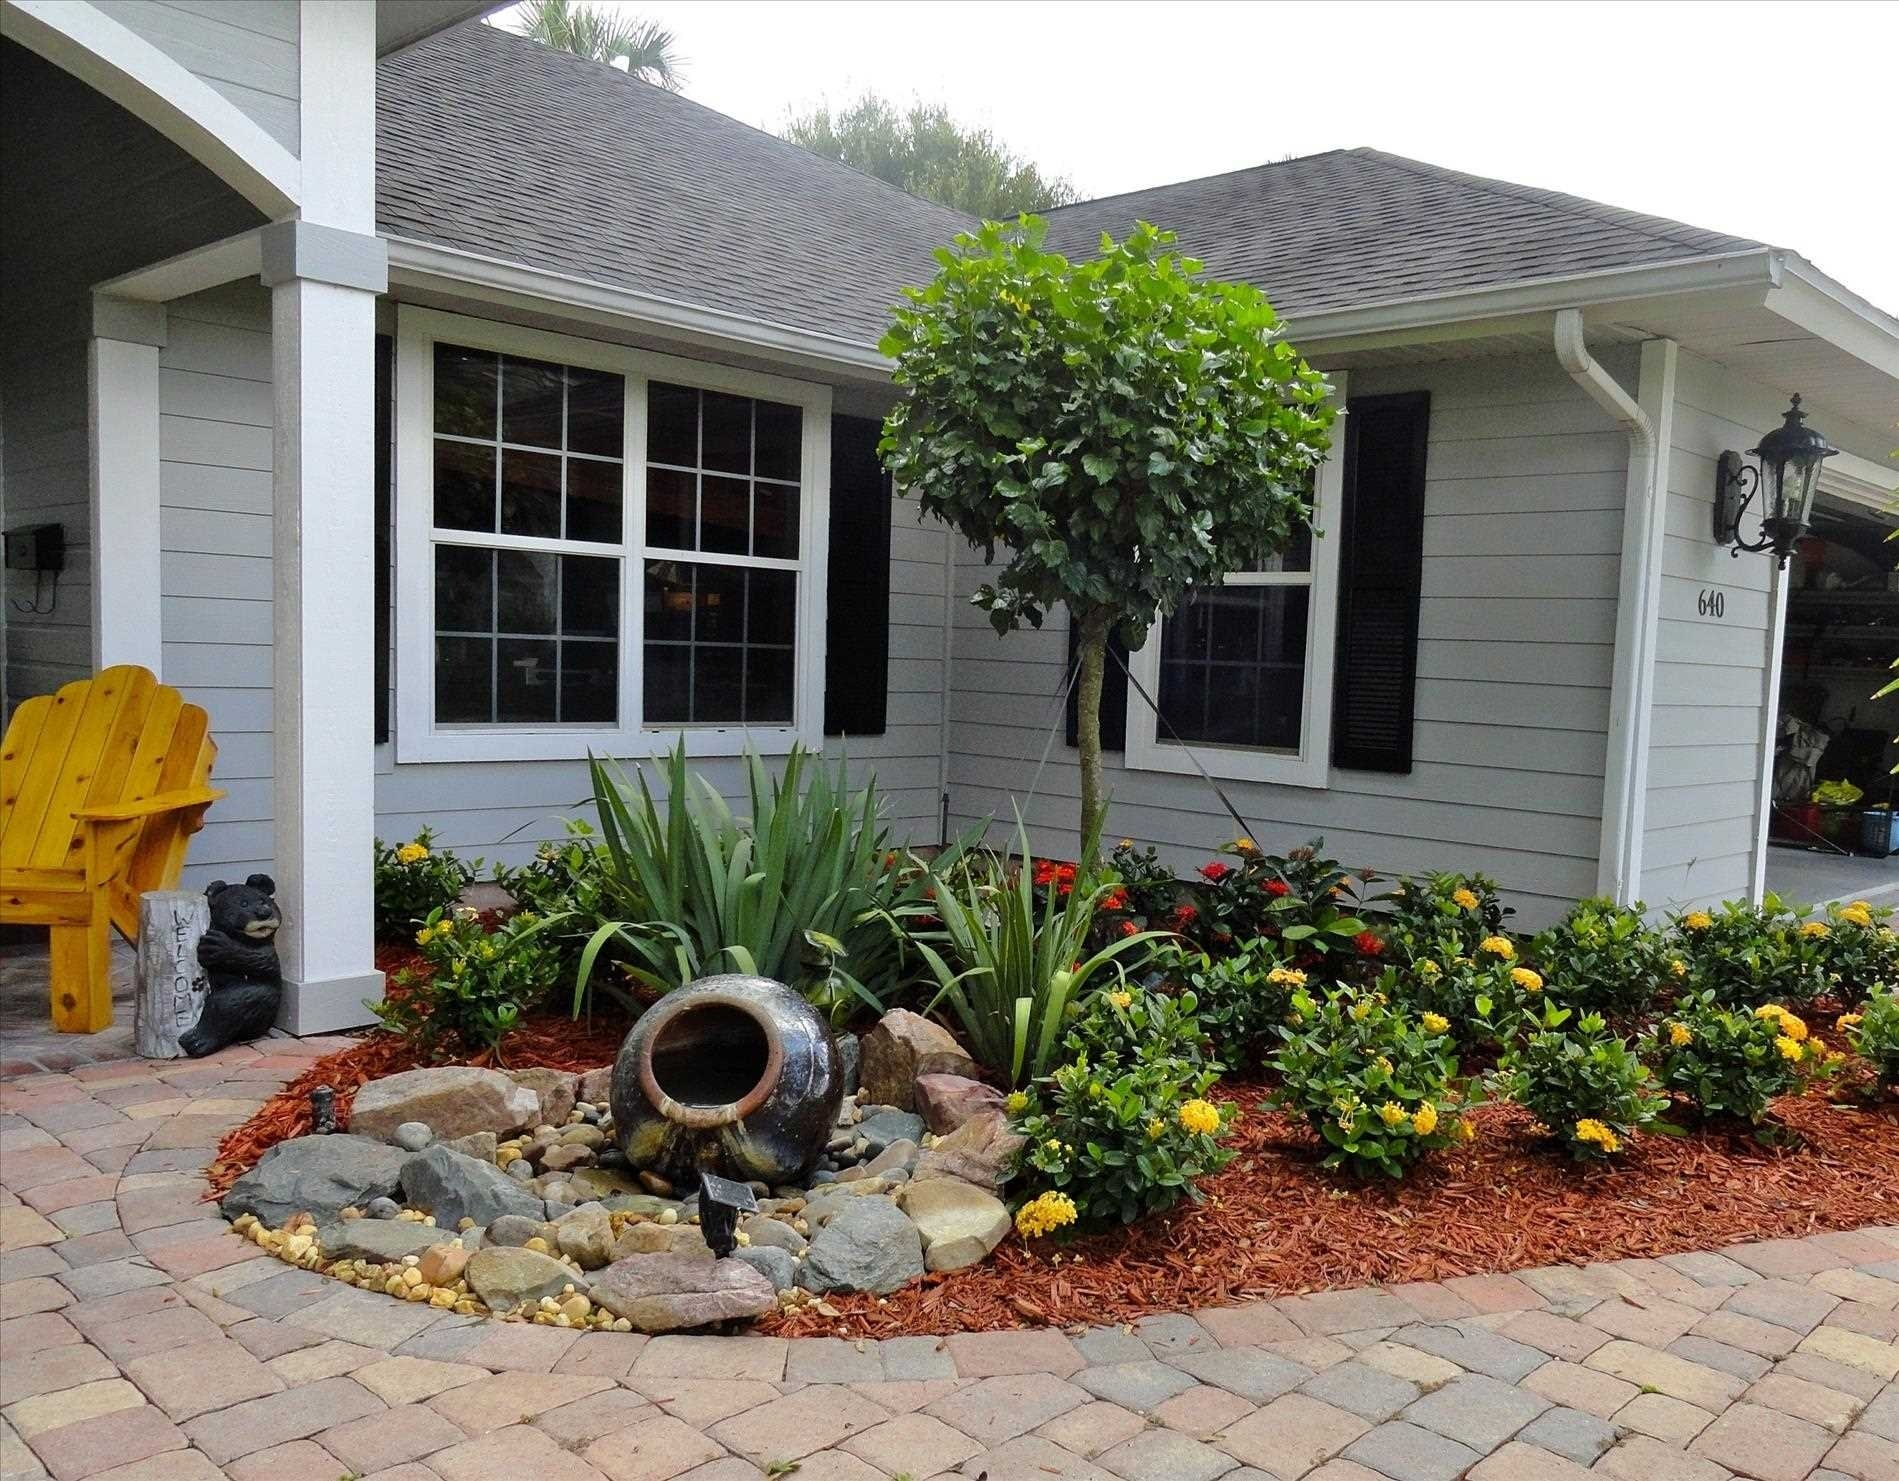 10 Stylish Simple Front Yard Landscaping Ideas On A Budget simple front yard landscaping ideas pictures applying with trees on